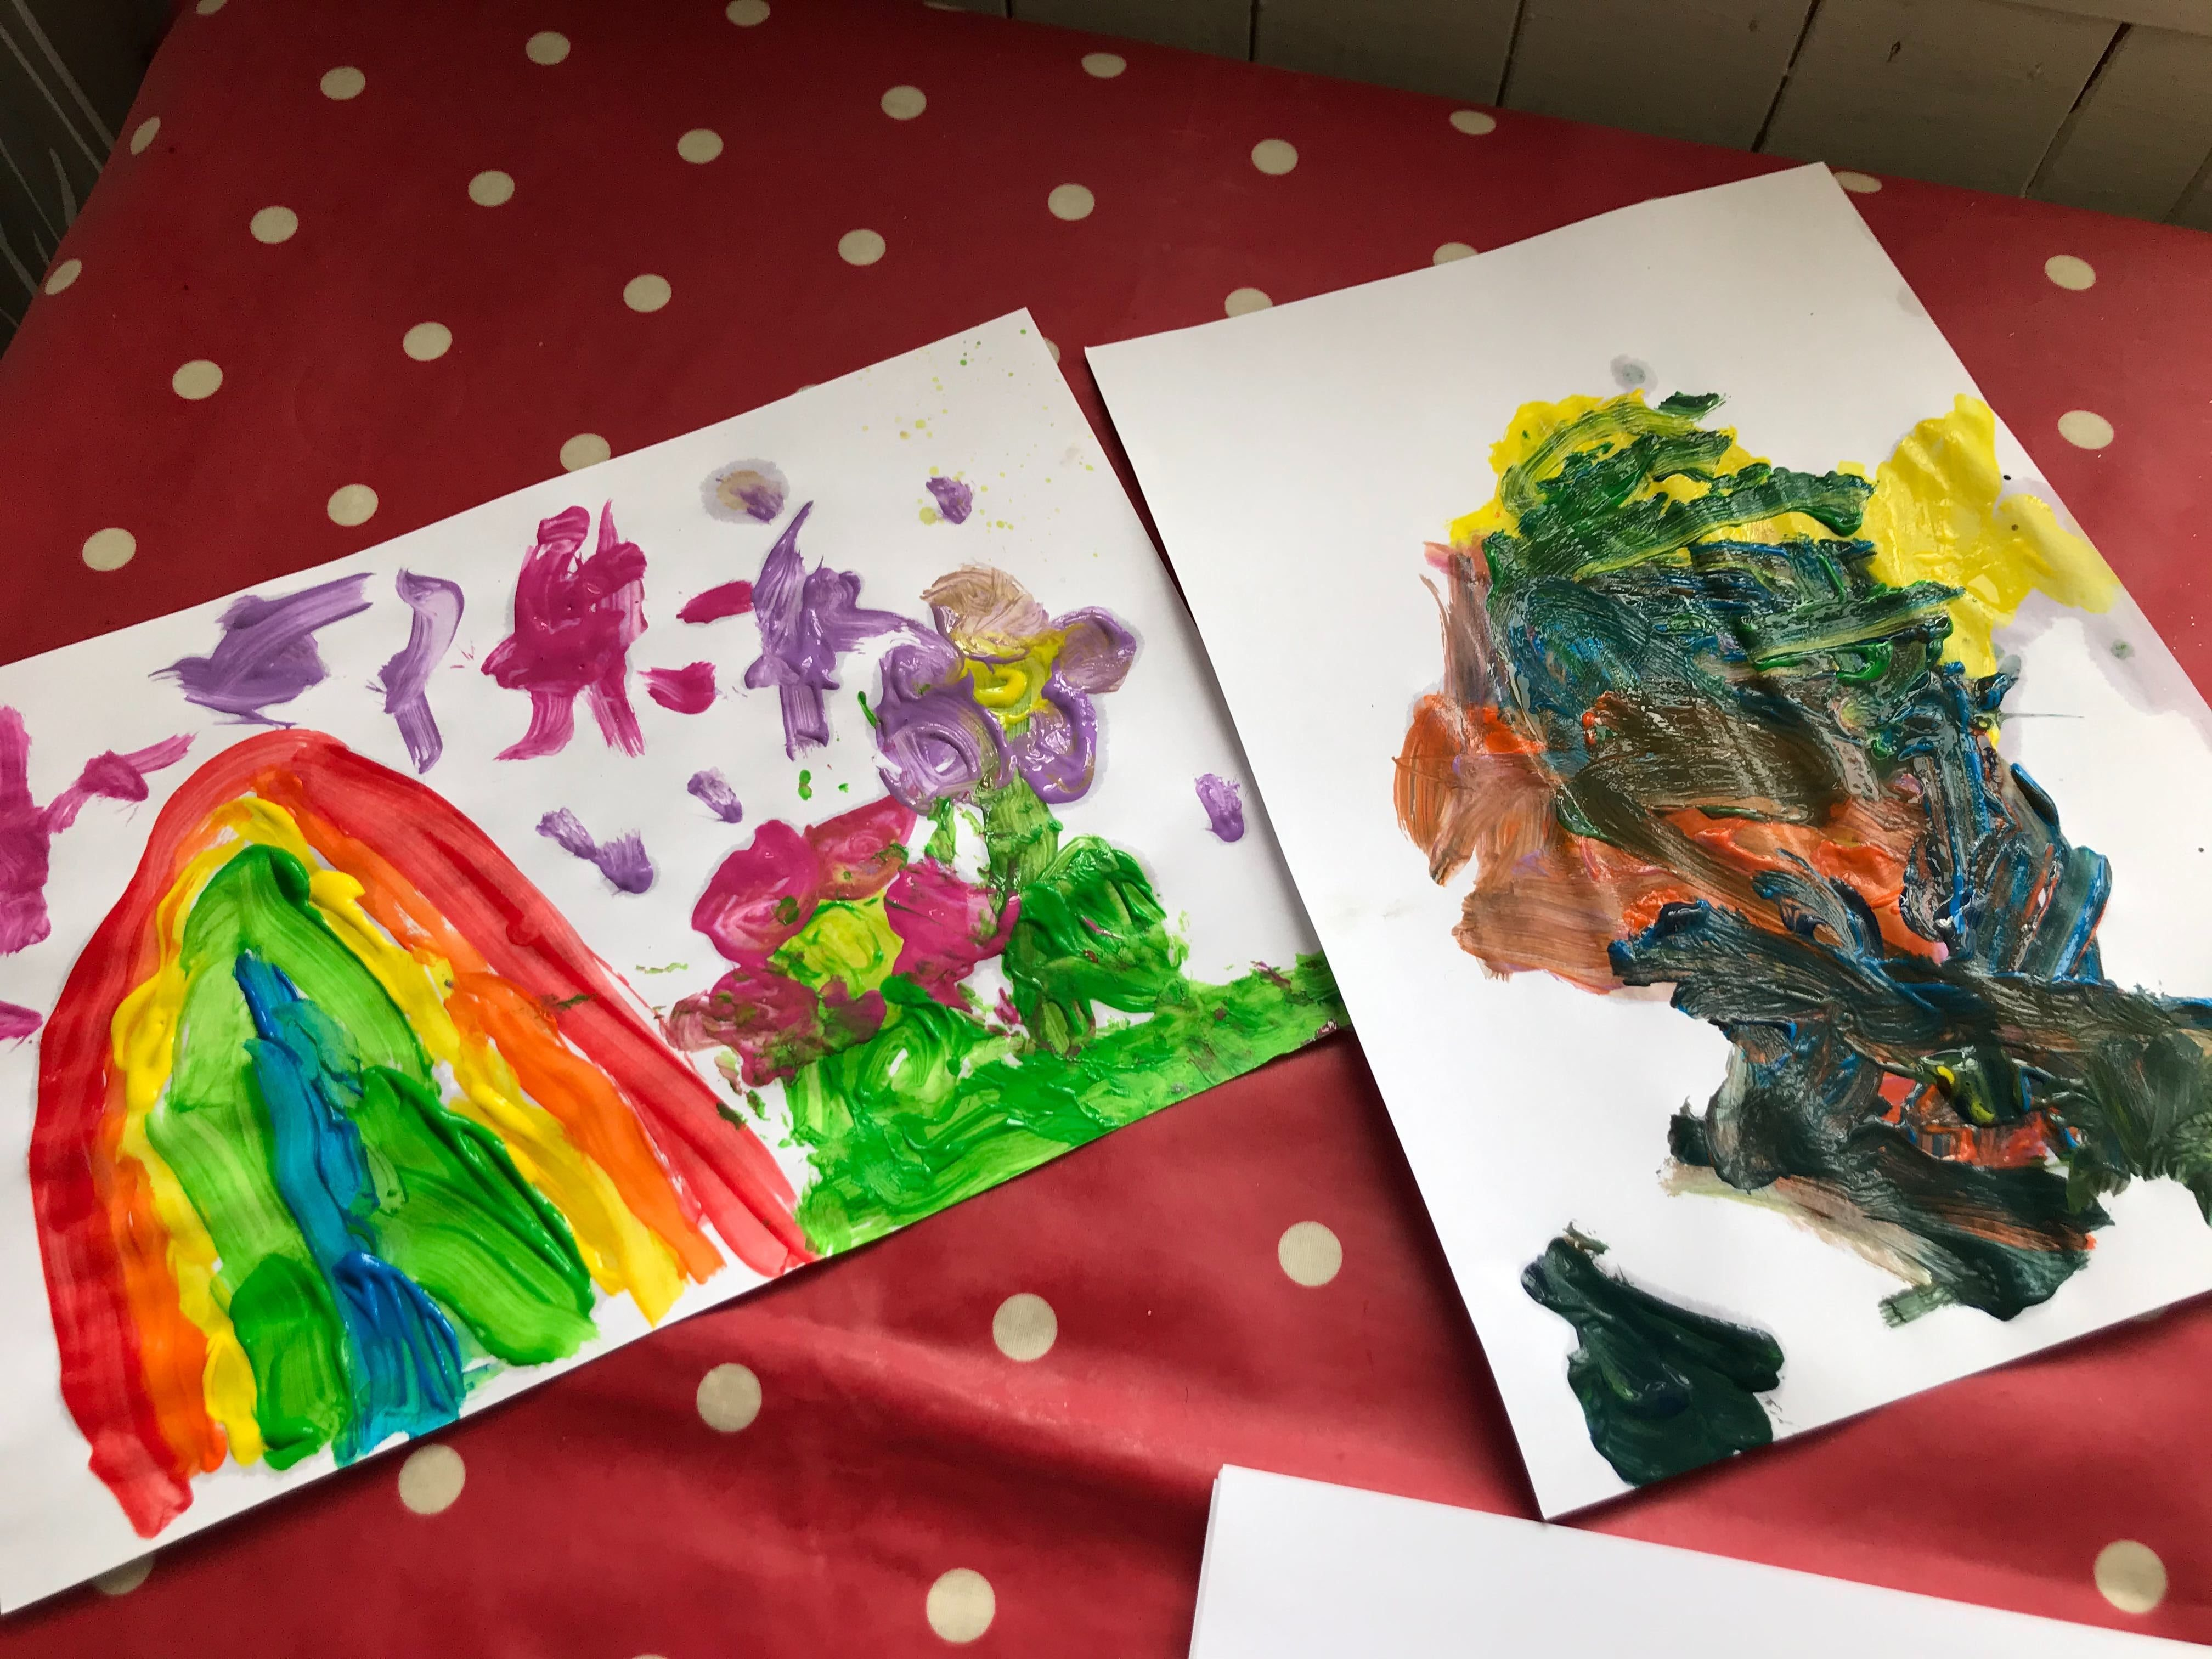 Two children's paintings of colourful rainbows on a table